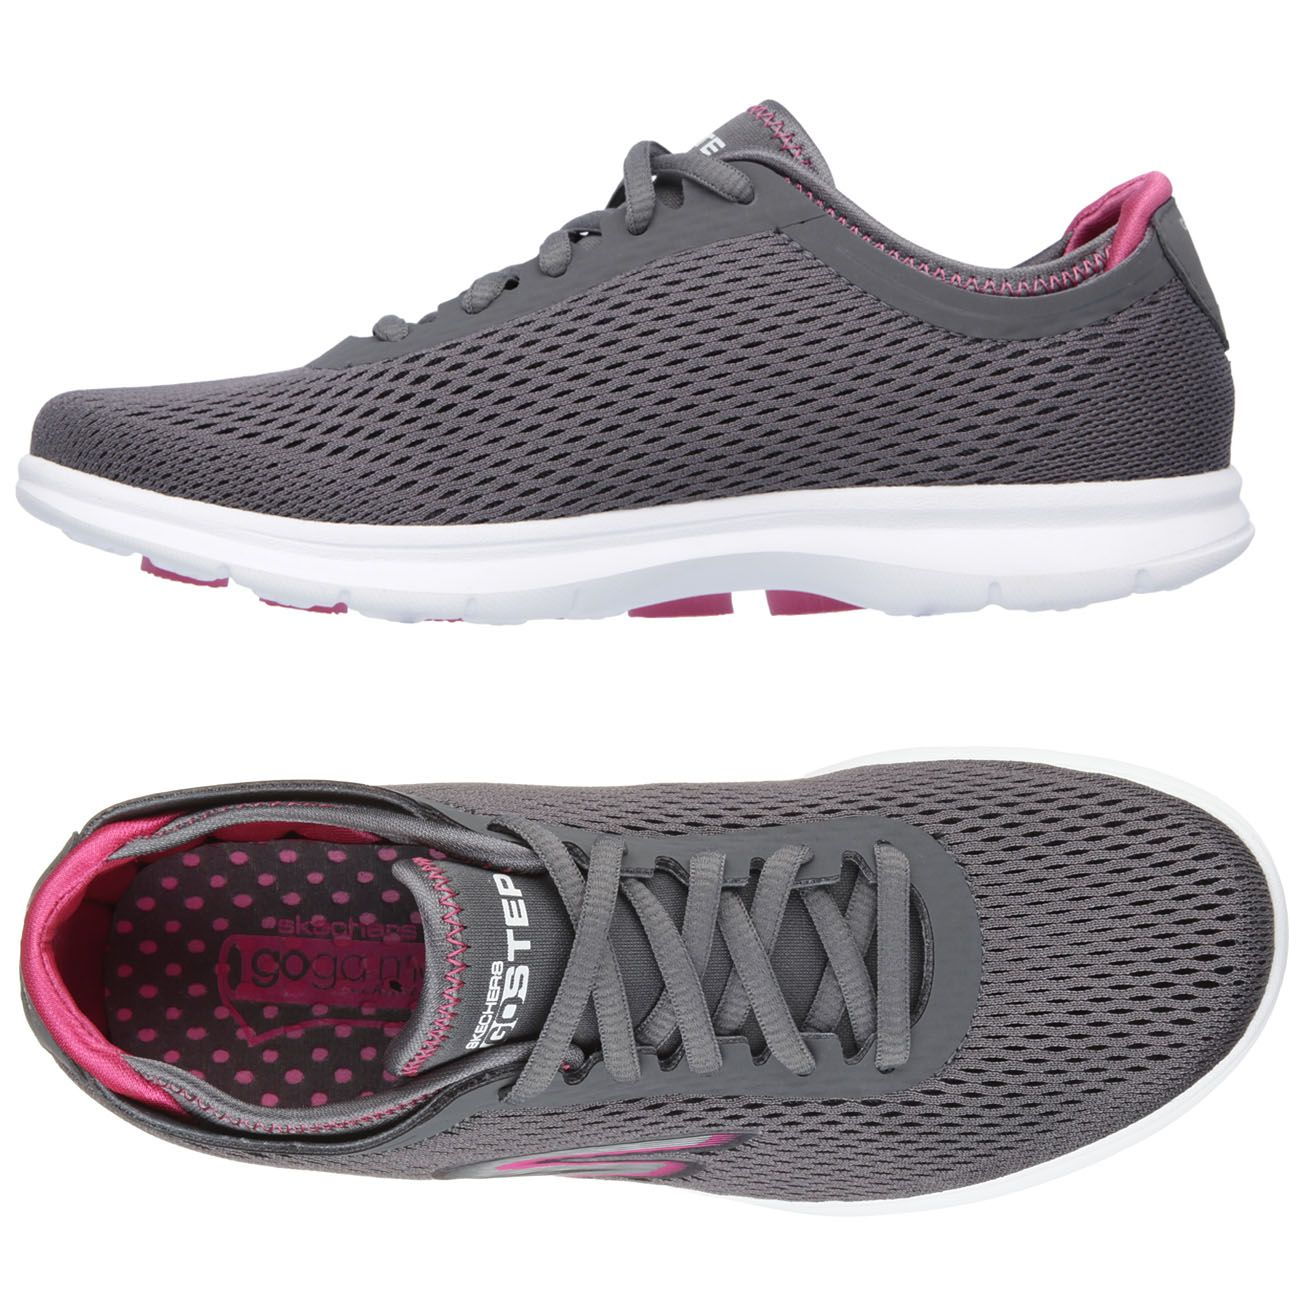 Skechers Performance Golf Shoes